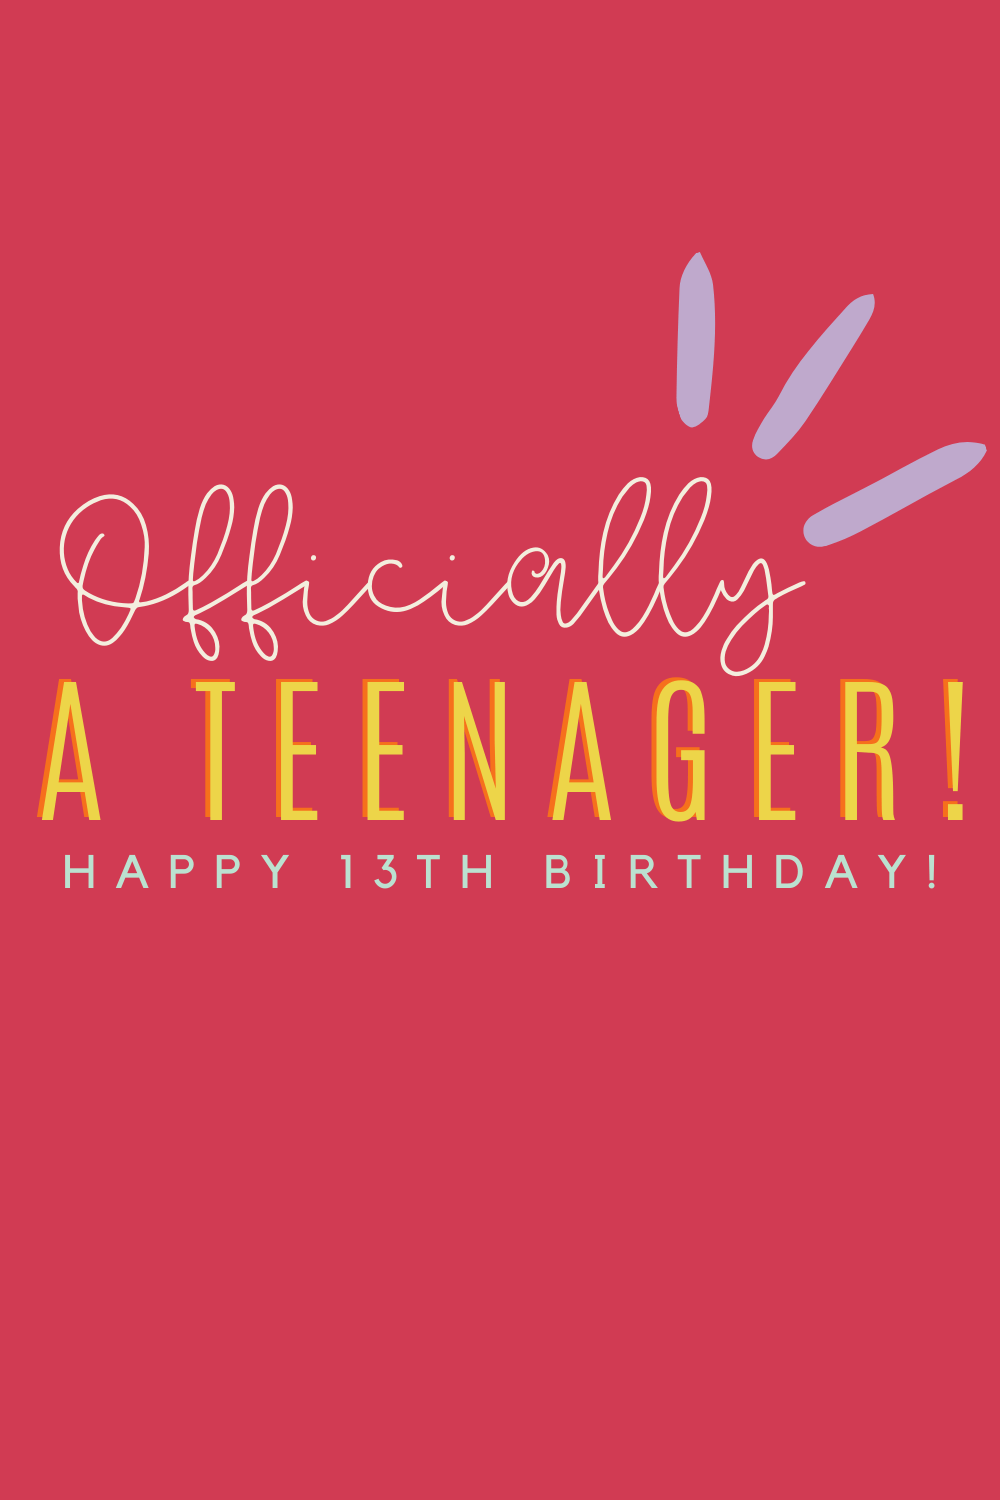 Teenage Birthday Quotes : teenage, birthday, quotes, Happiest, Birthday, Quotes, Darling, Quote